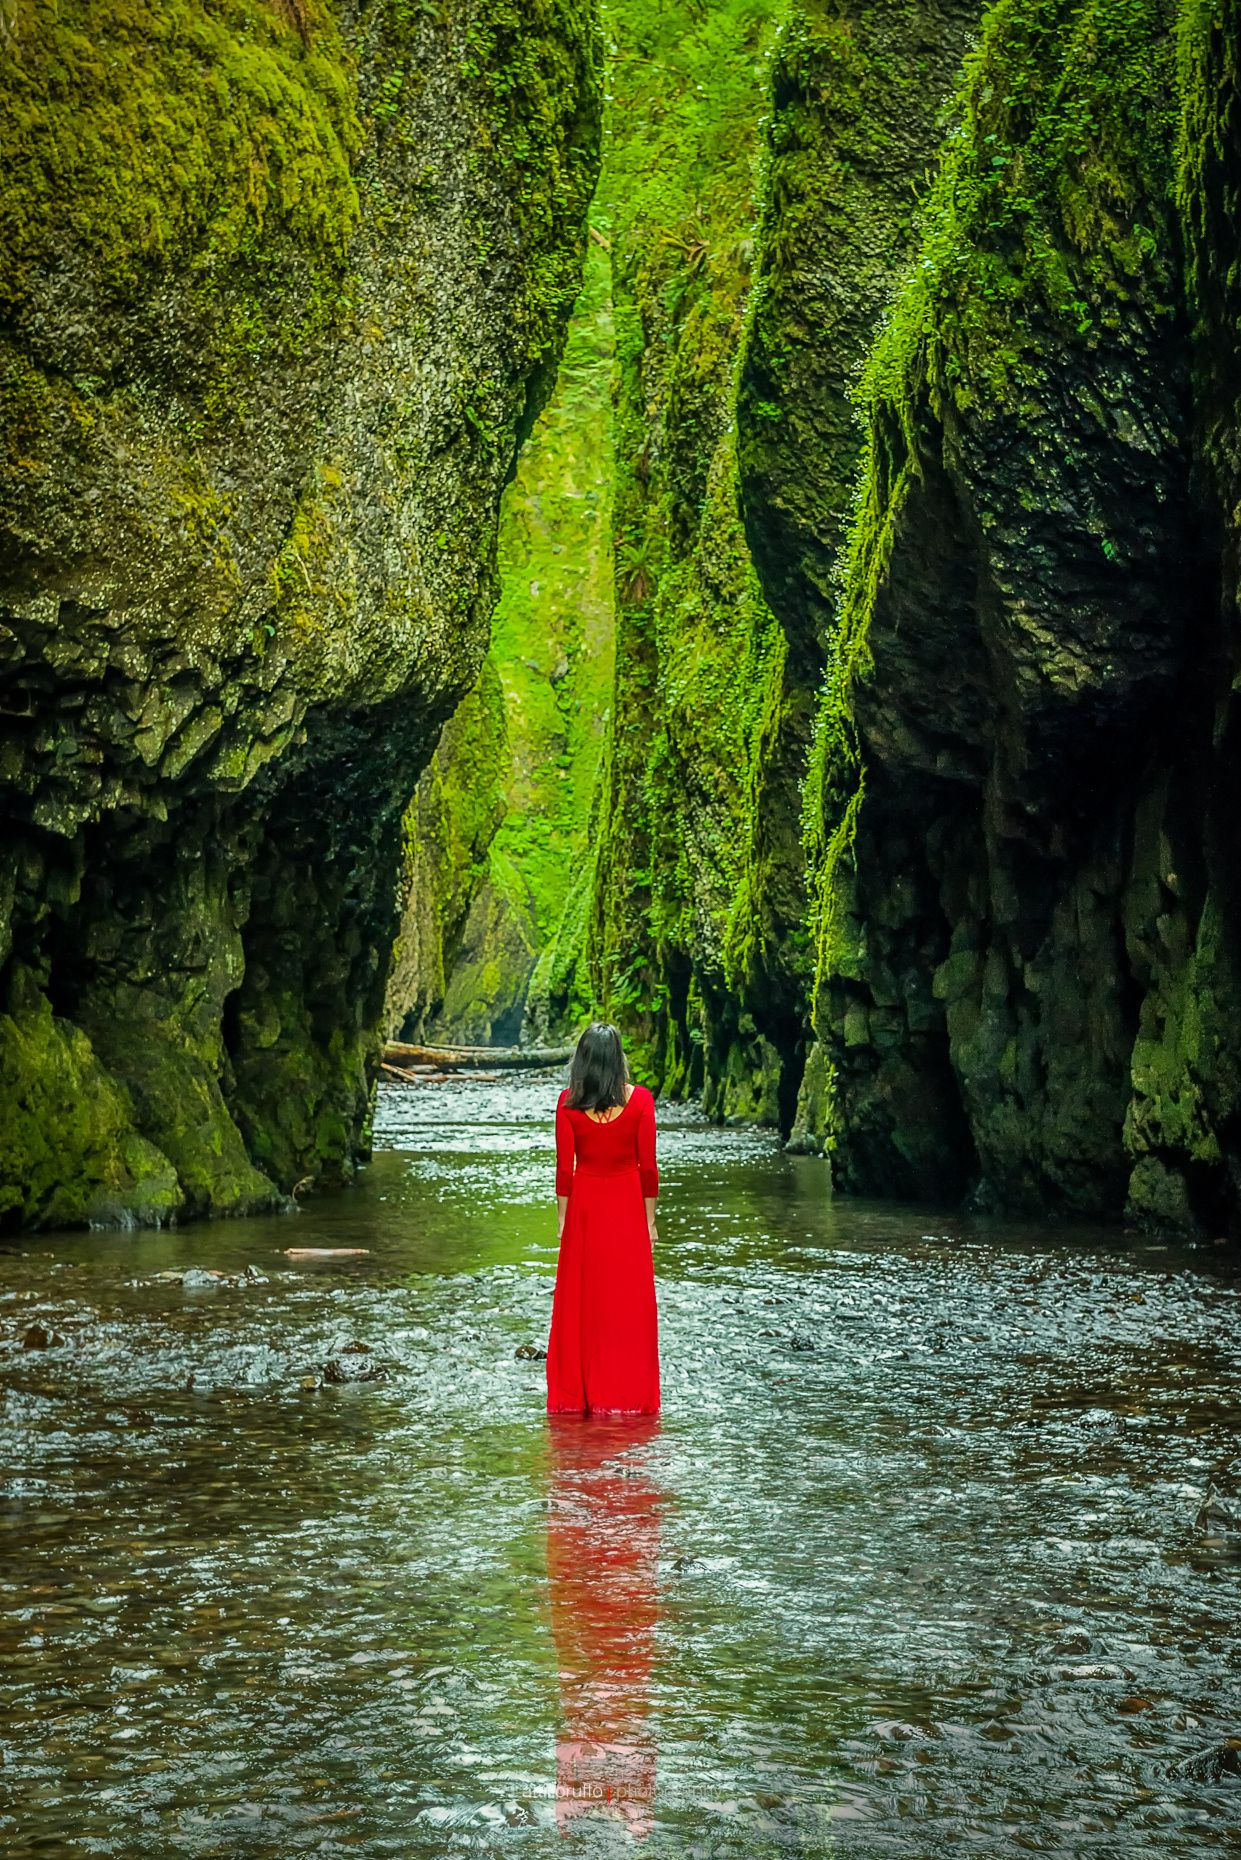 Lady in Red, Oneanta Gorge by Attilio Ruffo on 500px  )